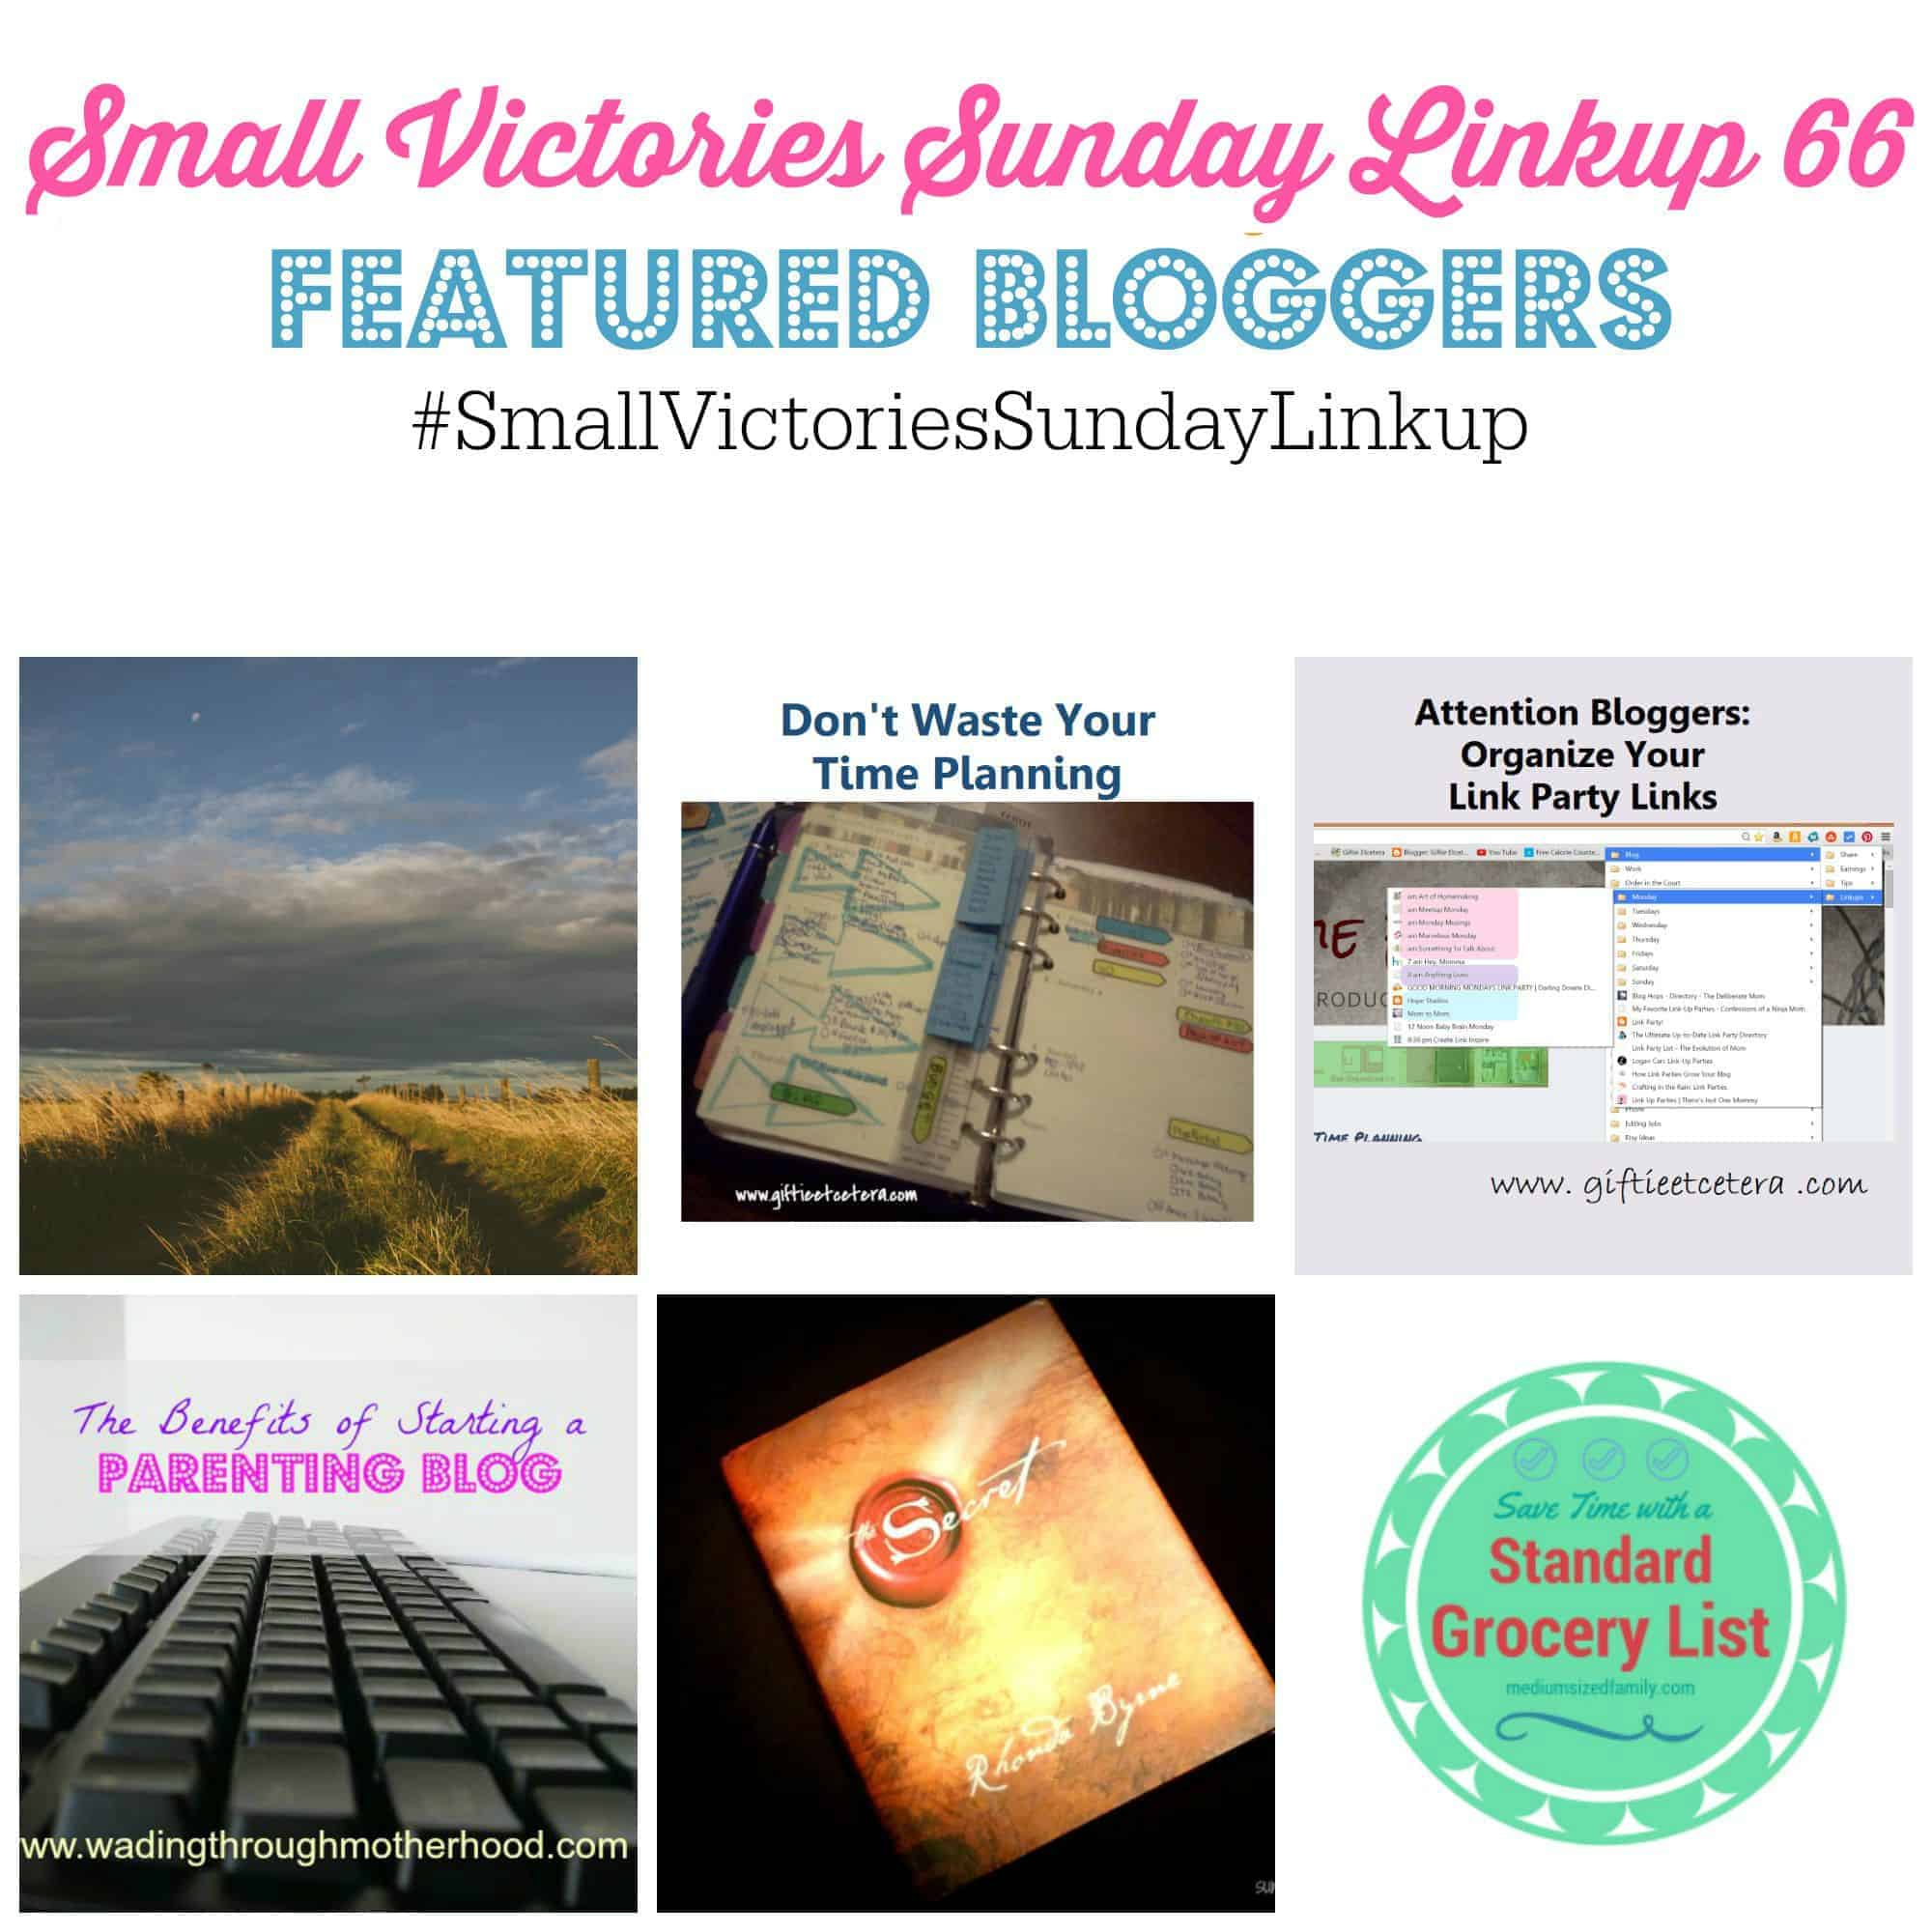 Small Victories Sunday Linkup 66 Featured Bloggers shared posts about Planning, Organizing your Linkup Party Schedule, a Currently update, the Benefits of Starting a Parenting Blog and How to Save Time with a Standard Grocery List.